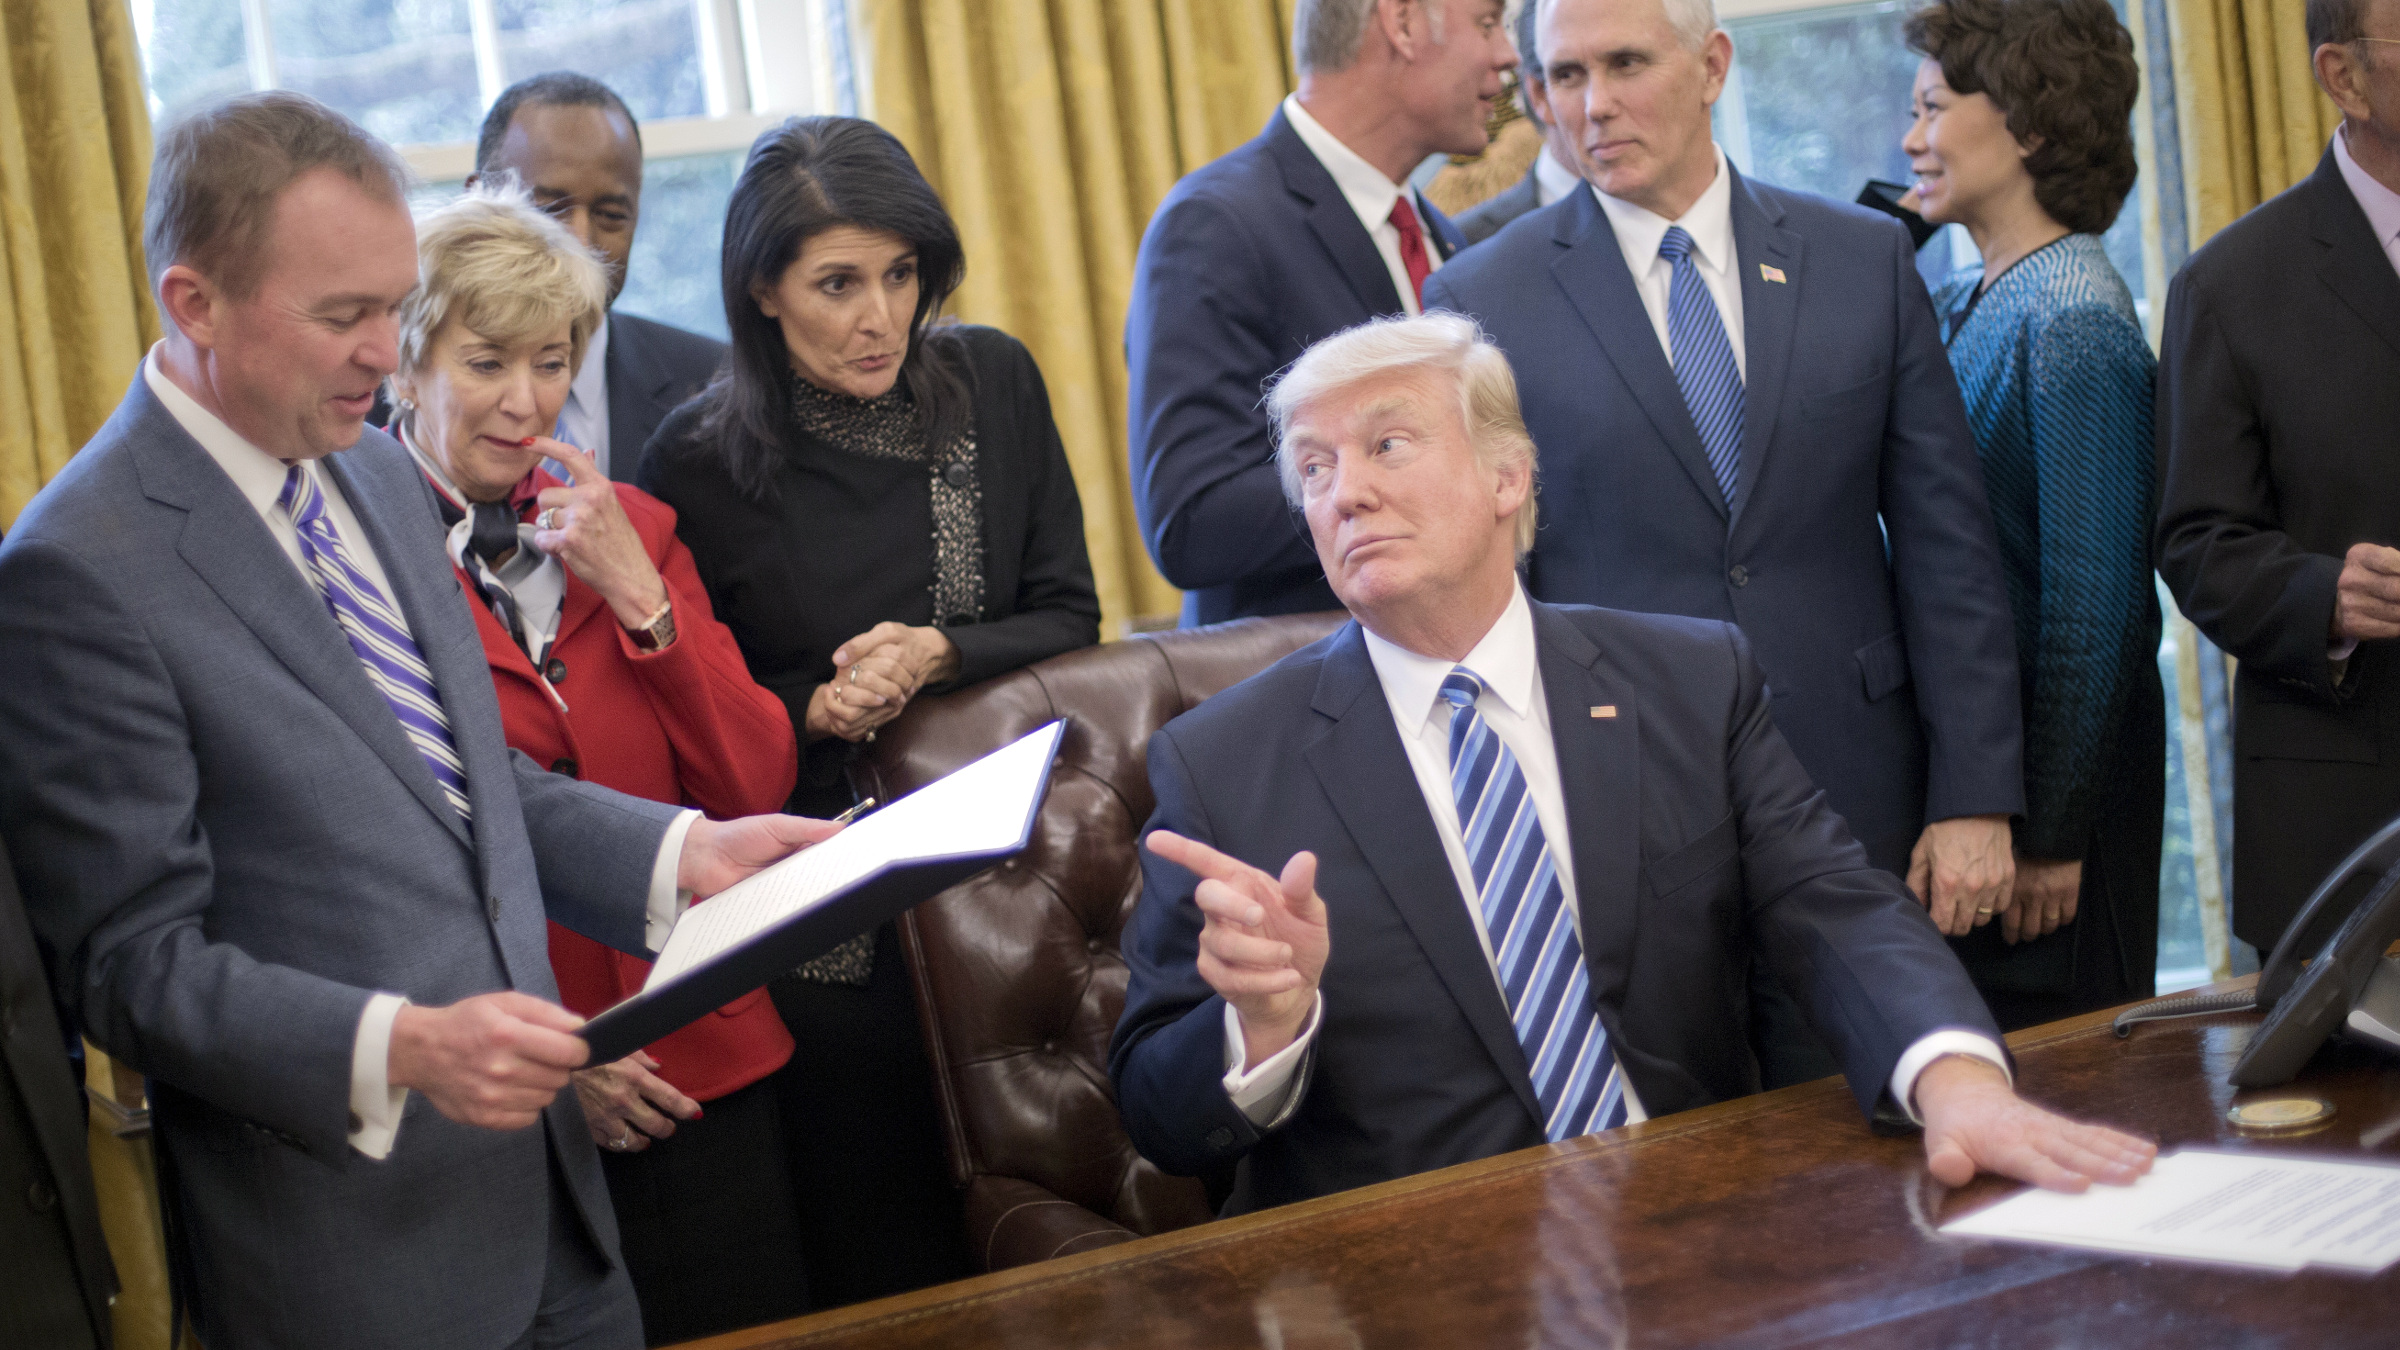 "President Donald Trump looks over towards Budget Director Mick Mulvaney, left, after signing an executive order in the Oval Office of the White House in Washington, Monday, March 13, 2017. Trump signed ""Comprehensive Plan for Reorganizing the Executive Branch"". From left are, Mulvaney, Small Business Administration Administrator Linda McMahon, Housing and Urban Development Secretary Ben Carson, UN Ambassador Nikki Haley, Interior Secretary Ryan Zinke, Vice President Mike Pence, Transportation Secretary Elaine Chao and Commerce Secretary Wilbur Ross."